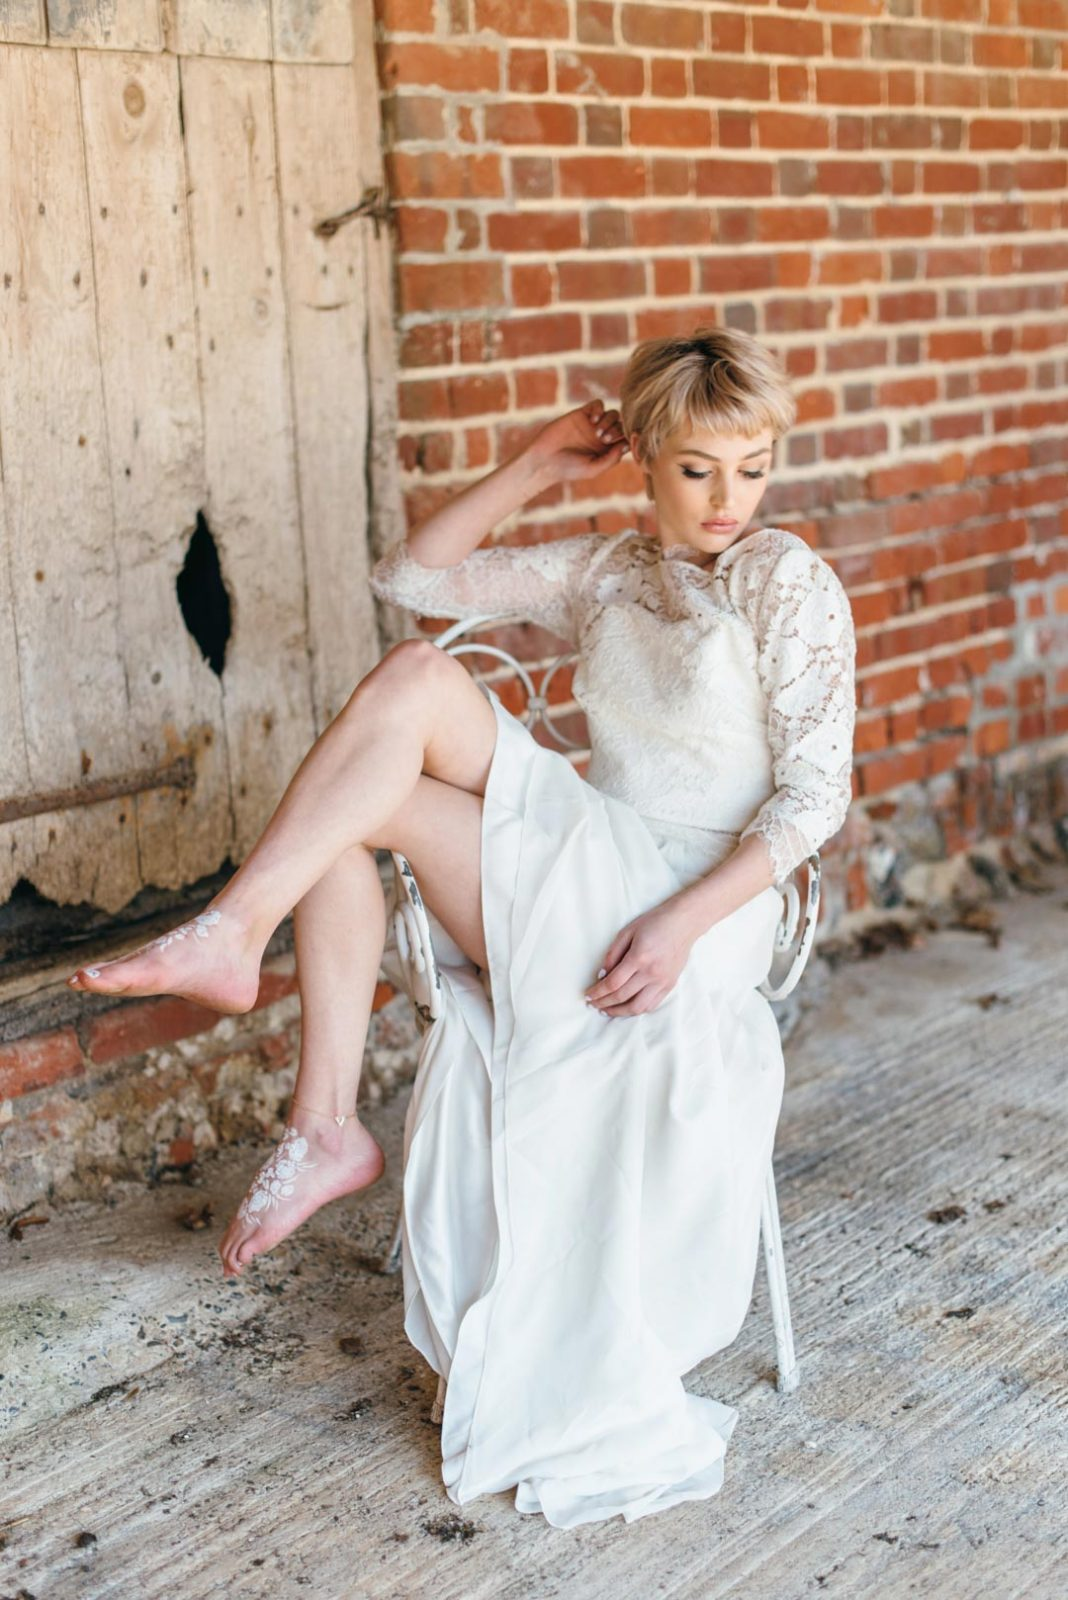 BethMoseleyPhotography_WhiteonWhite-130FINAL1080px wide-34